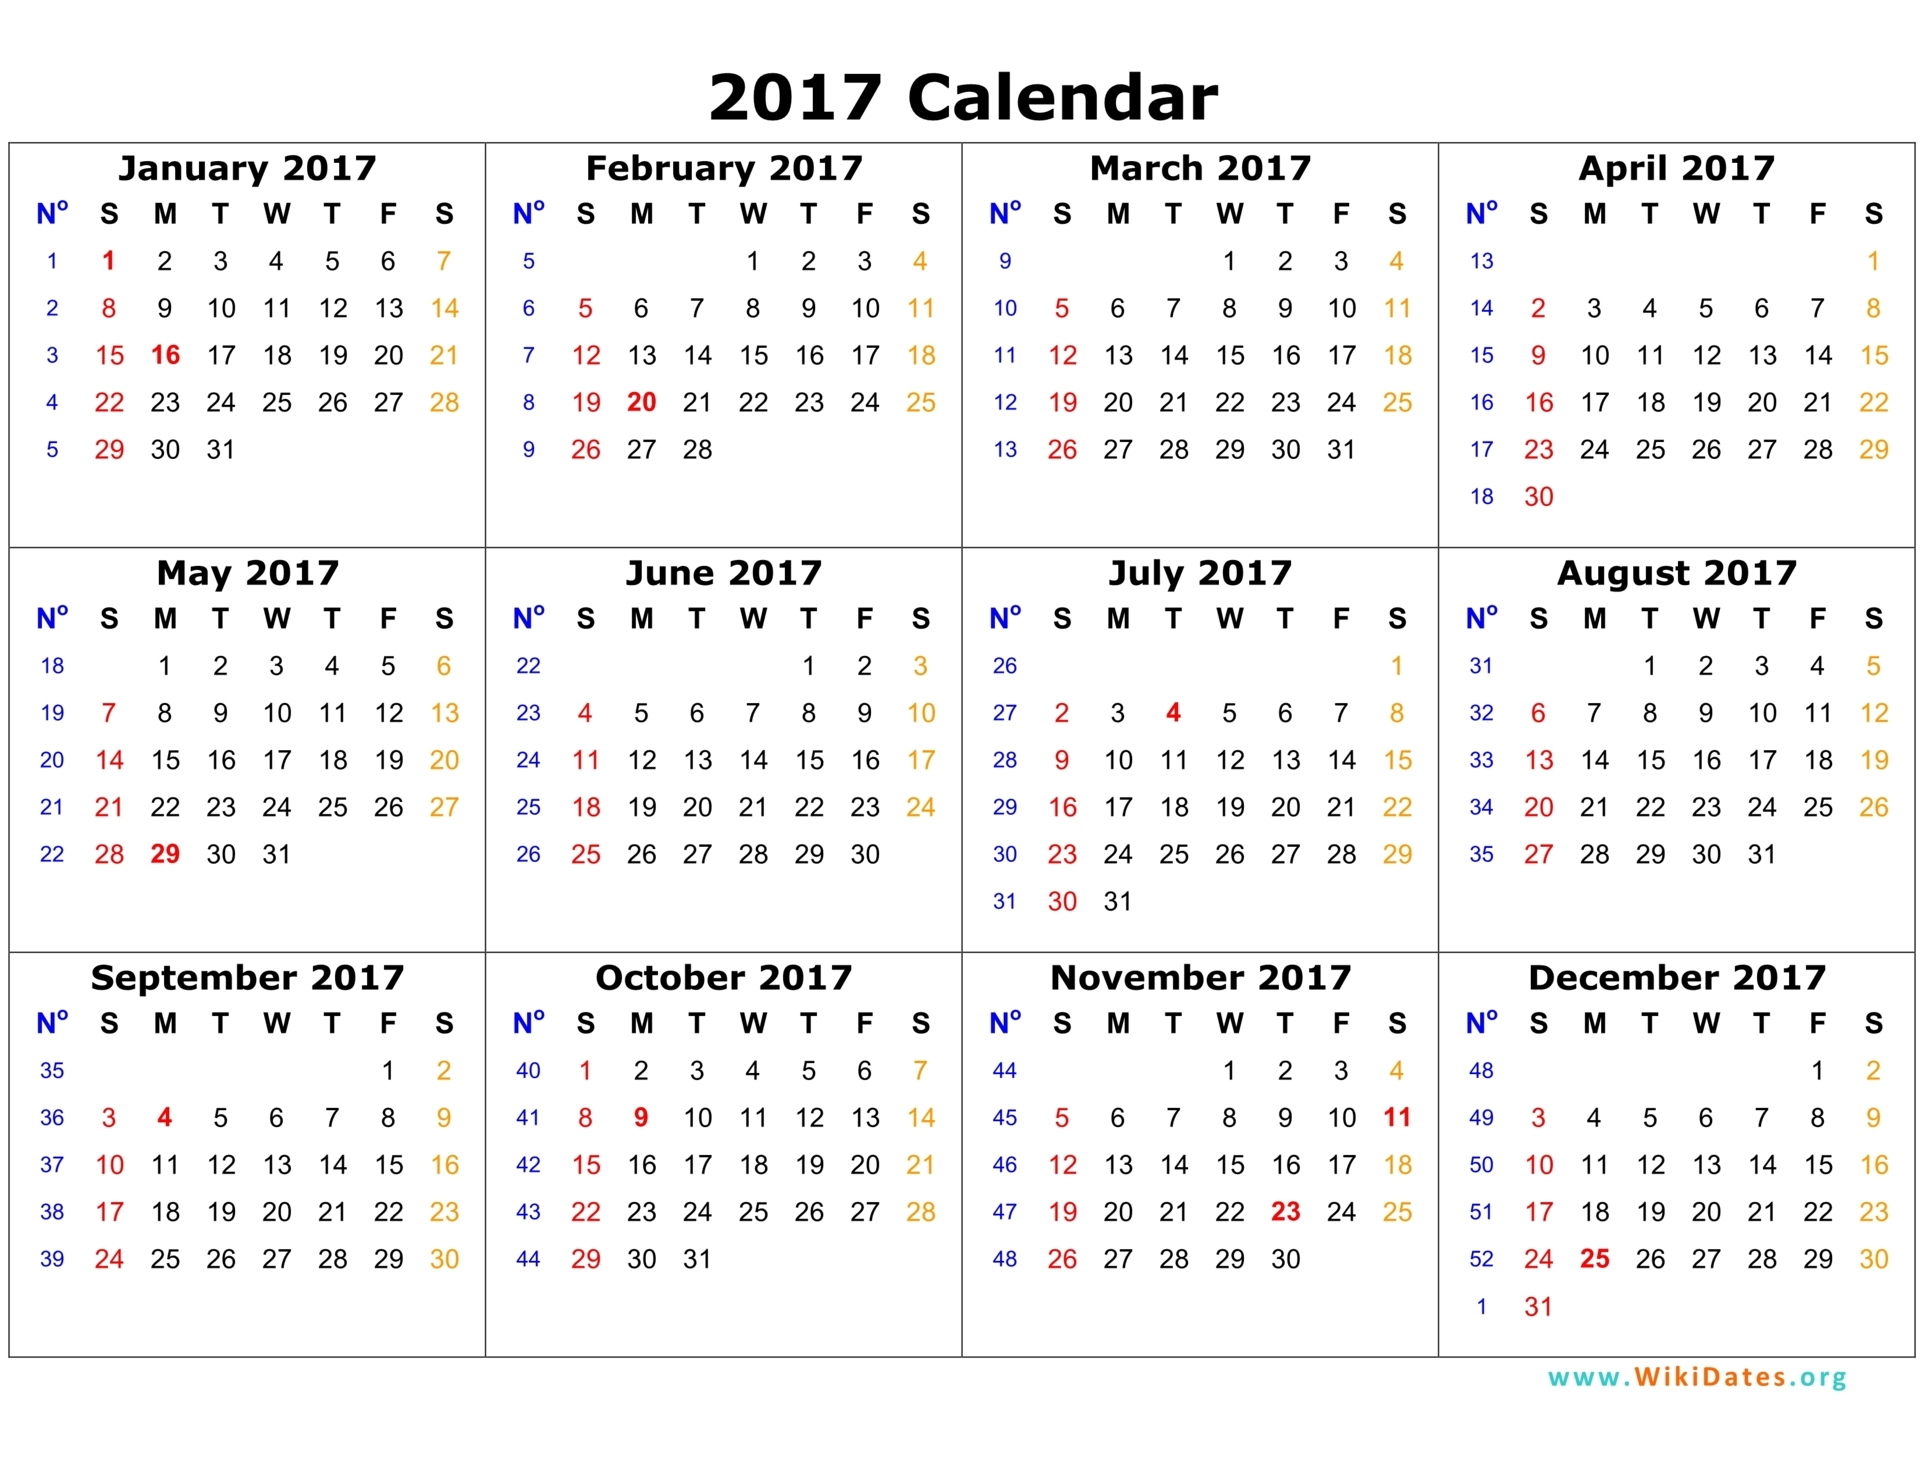 2017 Calendar One Page | 2017 calendar with holidays